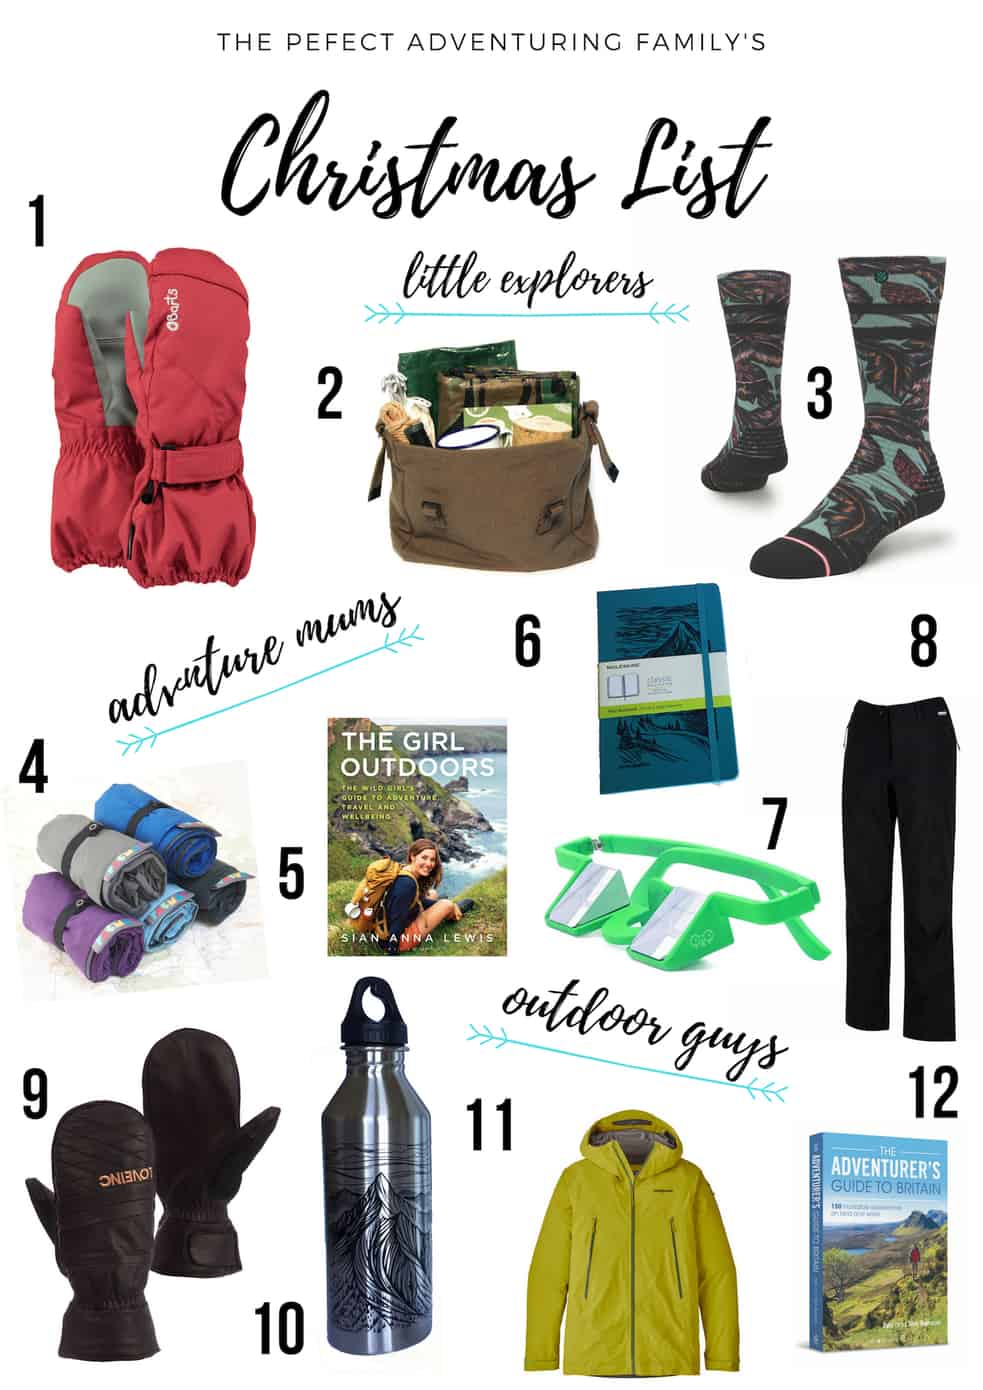 Outdoor Christmas Gift Ideas for Adventurous Families - The Family ...